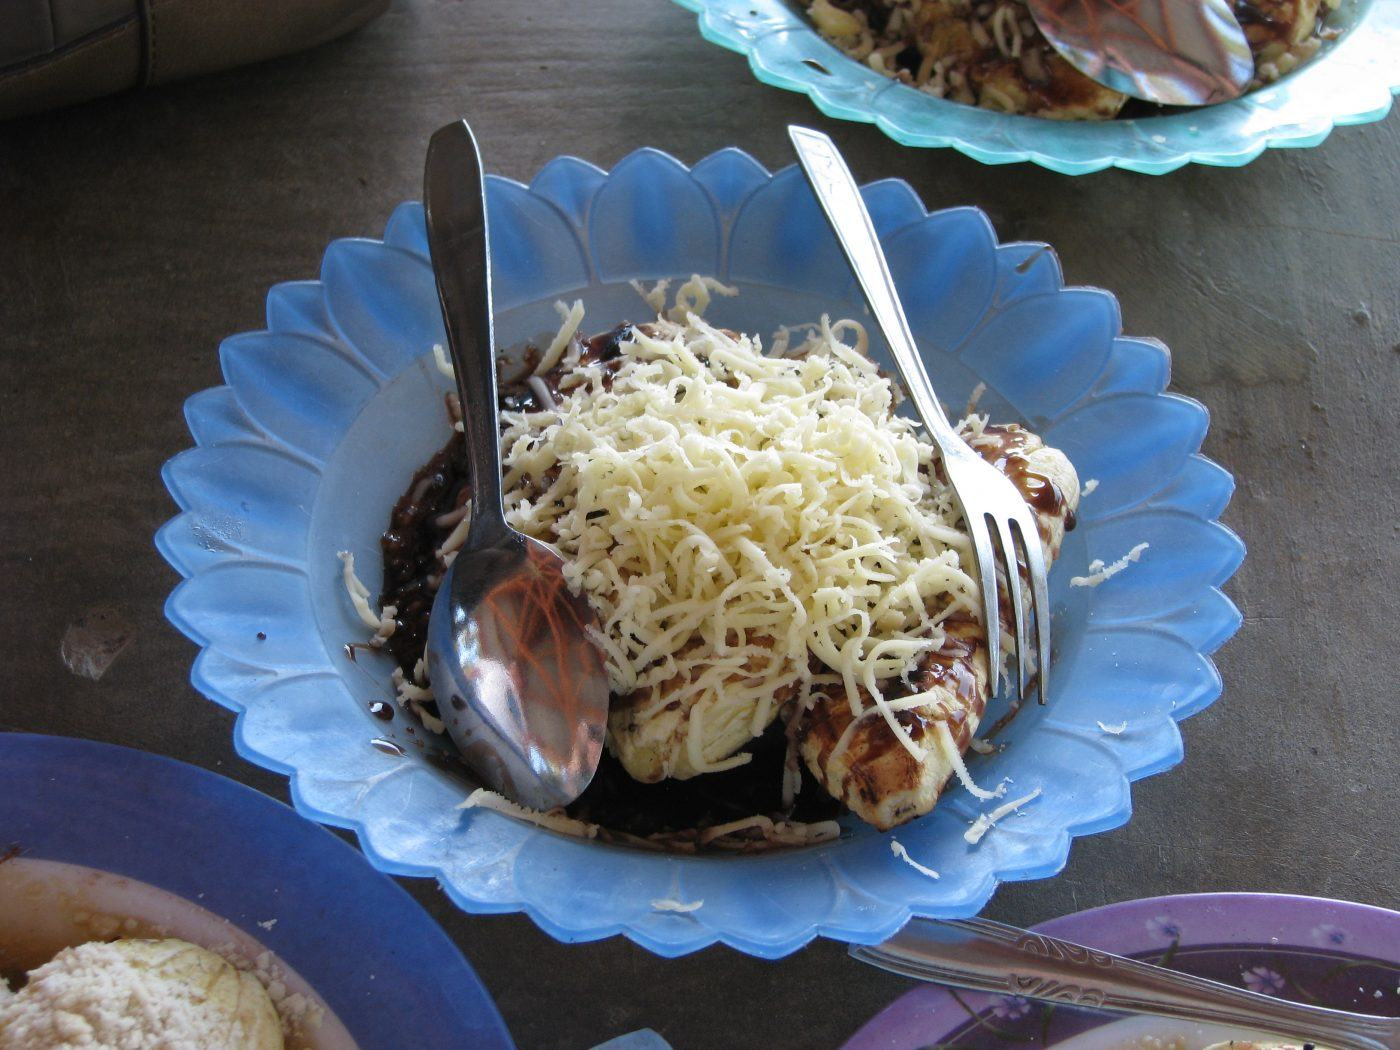 grilled bananas with chocolate and shredded white cheese